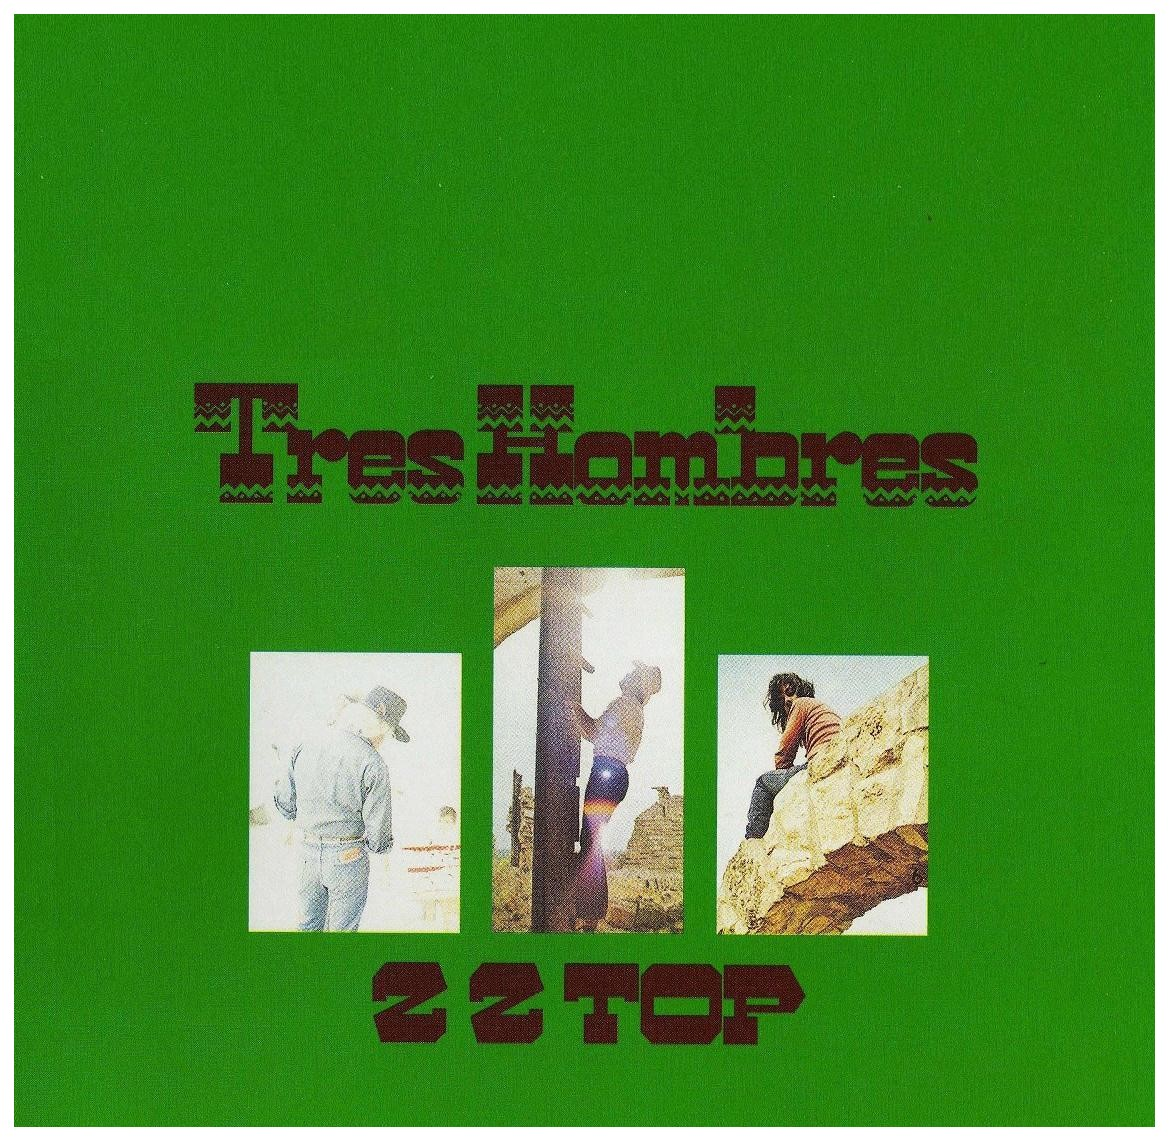 Point Blank Games Zz Top Tres Hombres 1973 Hard